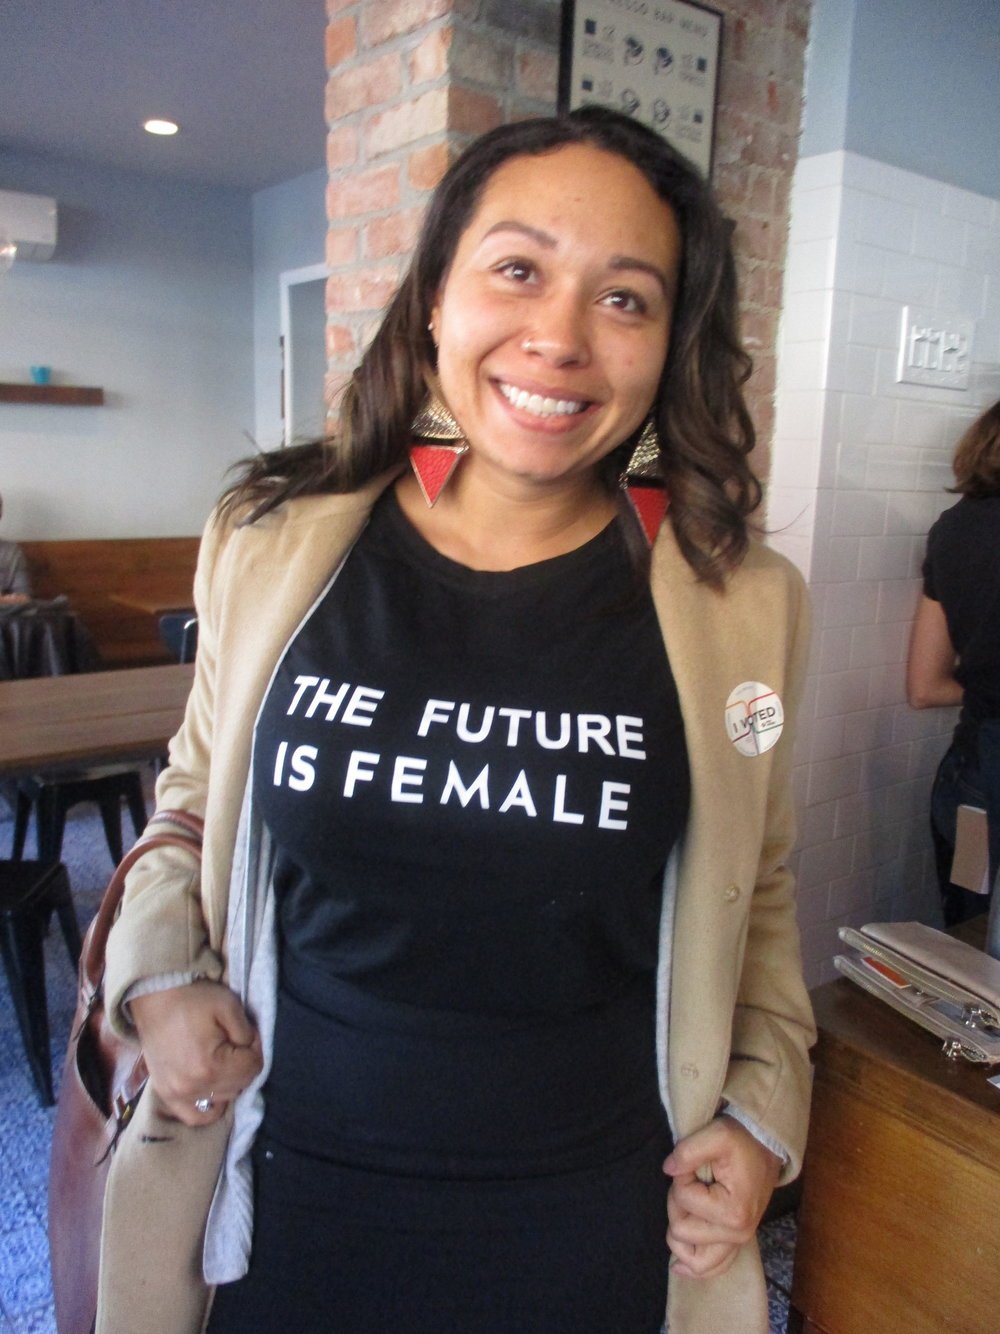 The future is female and she voted to make it happen; she is the future.